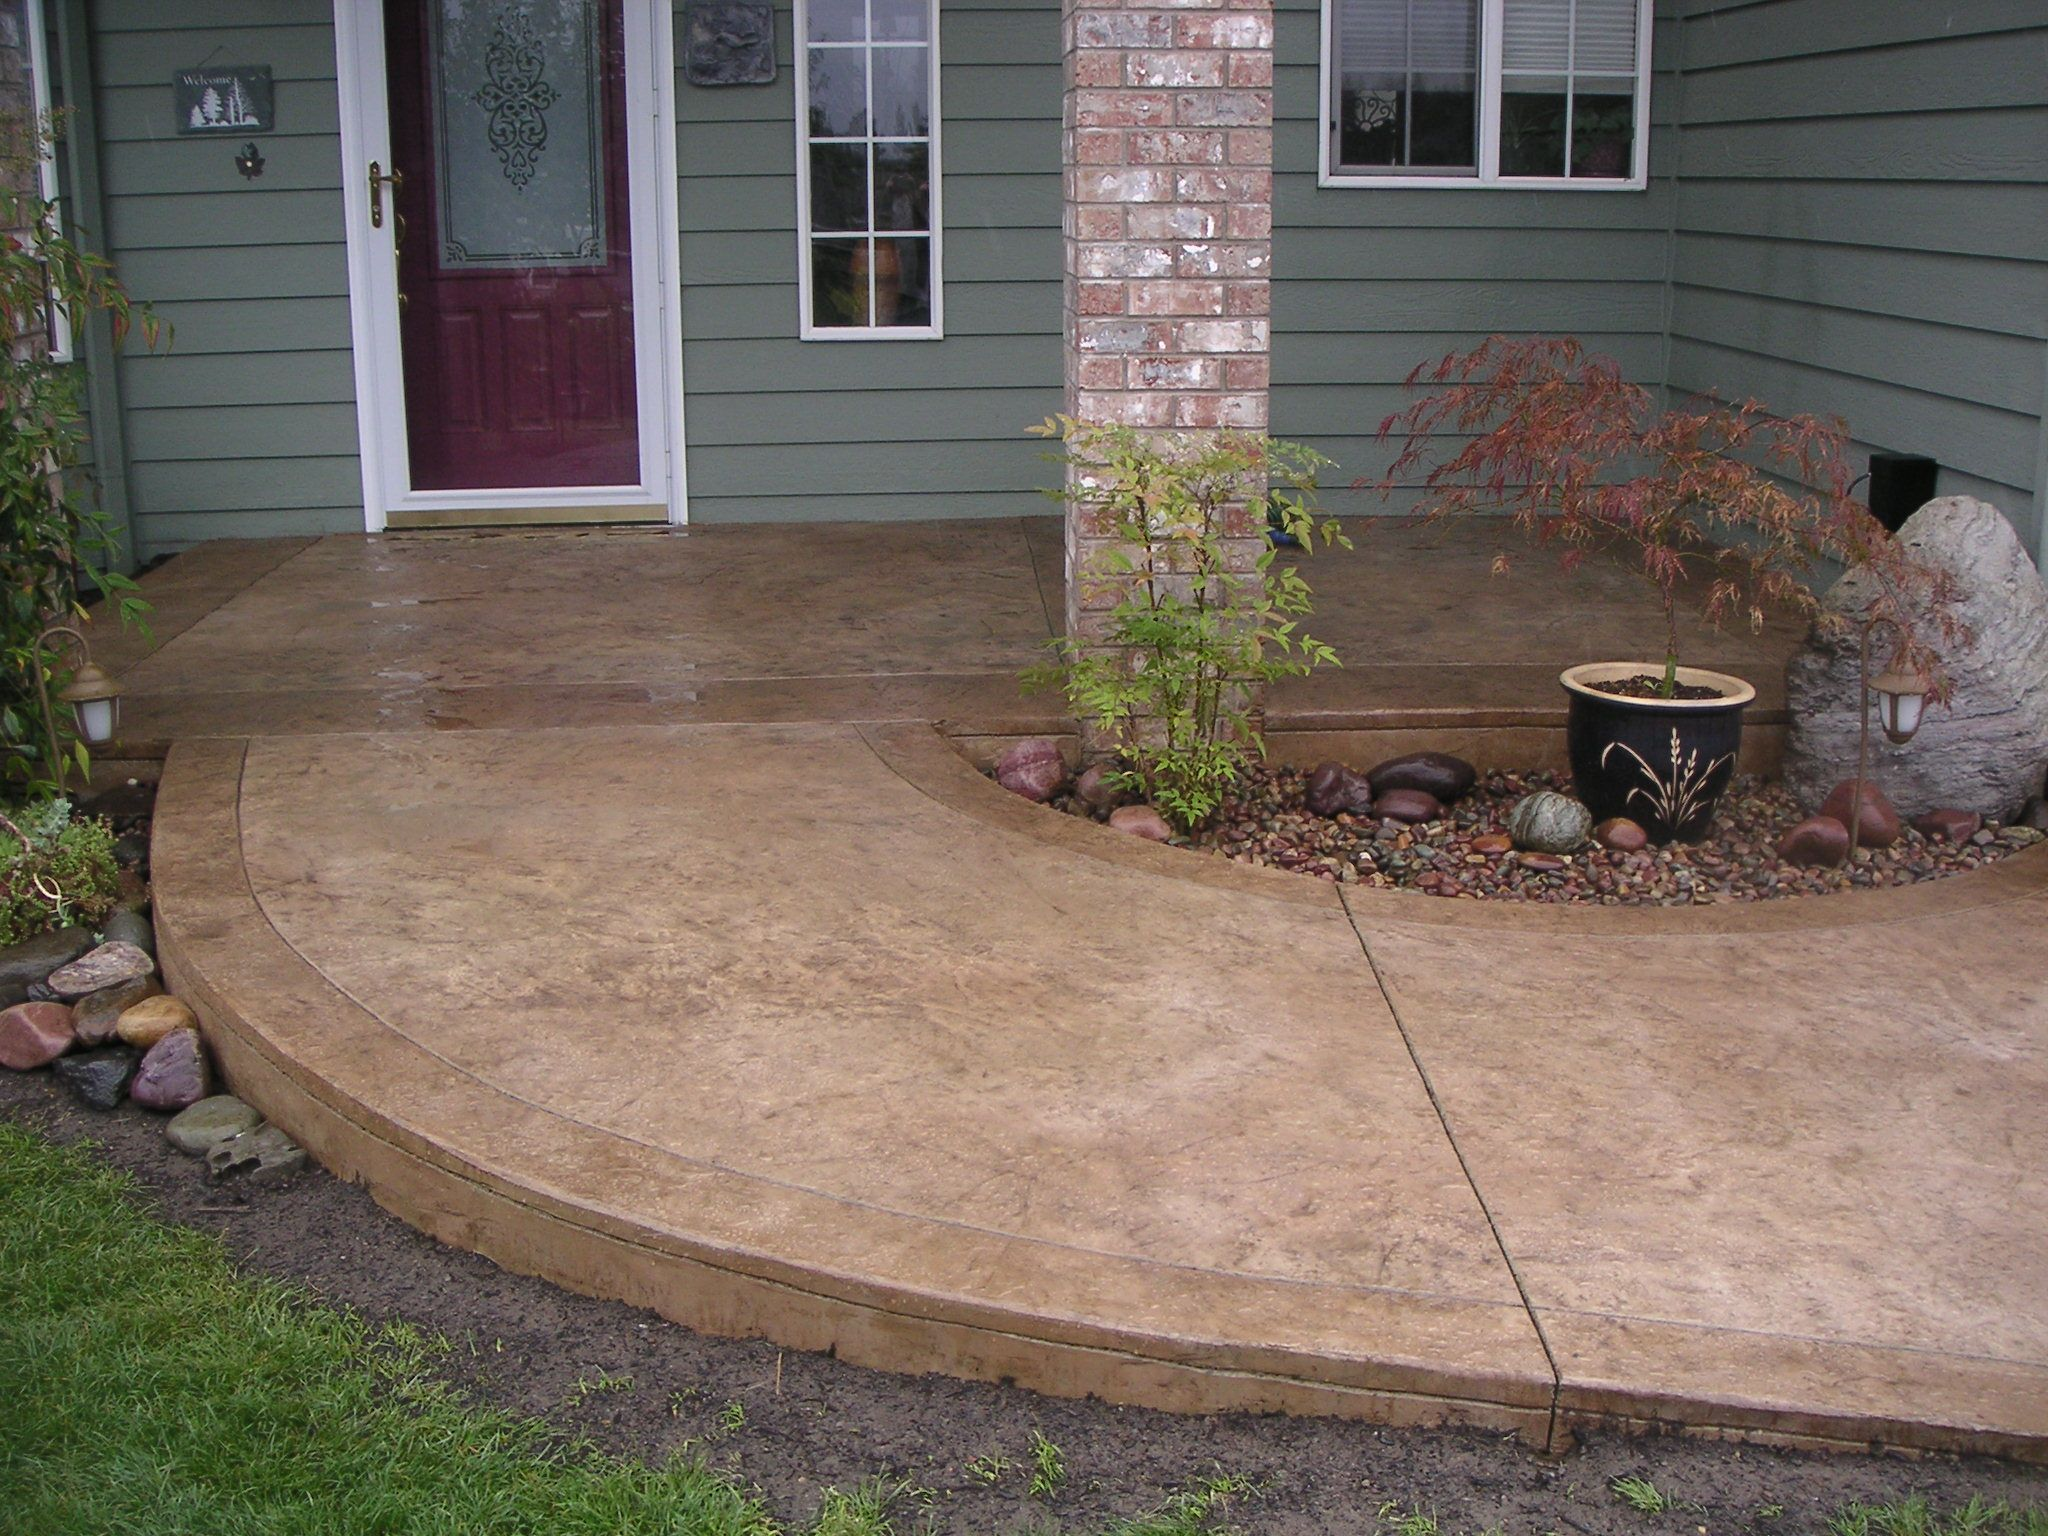 Best 25+ Concrete Patio Stain Ideas On Pinterest | Acid Stained Concrete  Patio, Diy Concrete Patio And Stain Concrete Patios